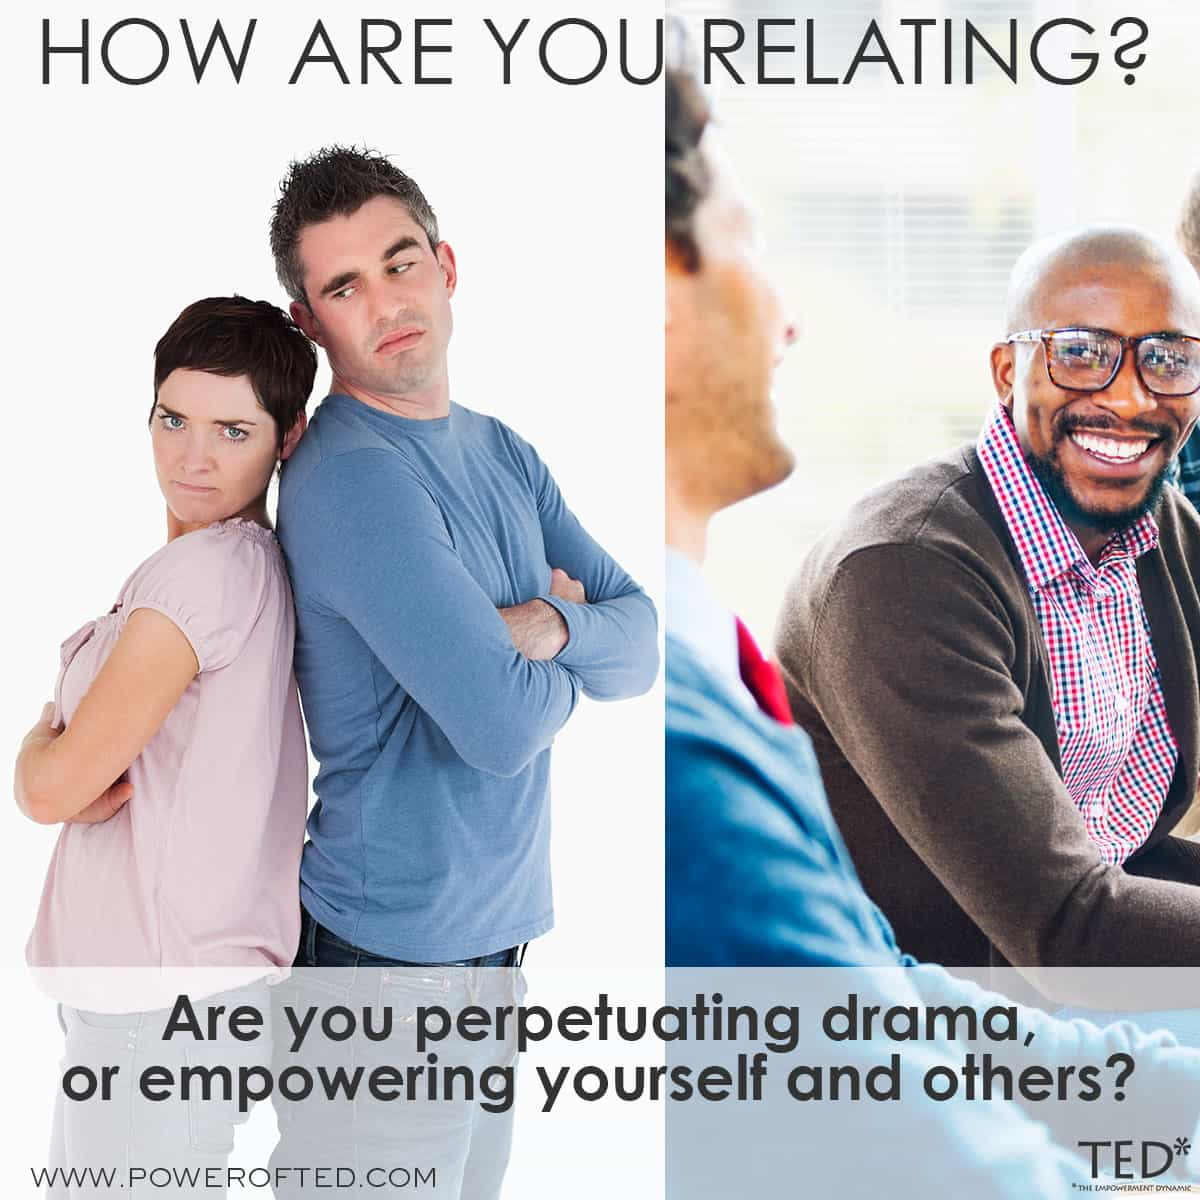 How Are You Relating? Are you perpetuating drama or empowering yourself and others?